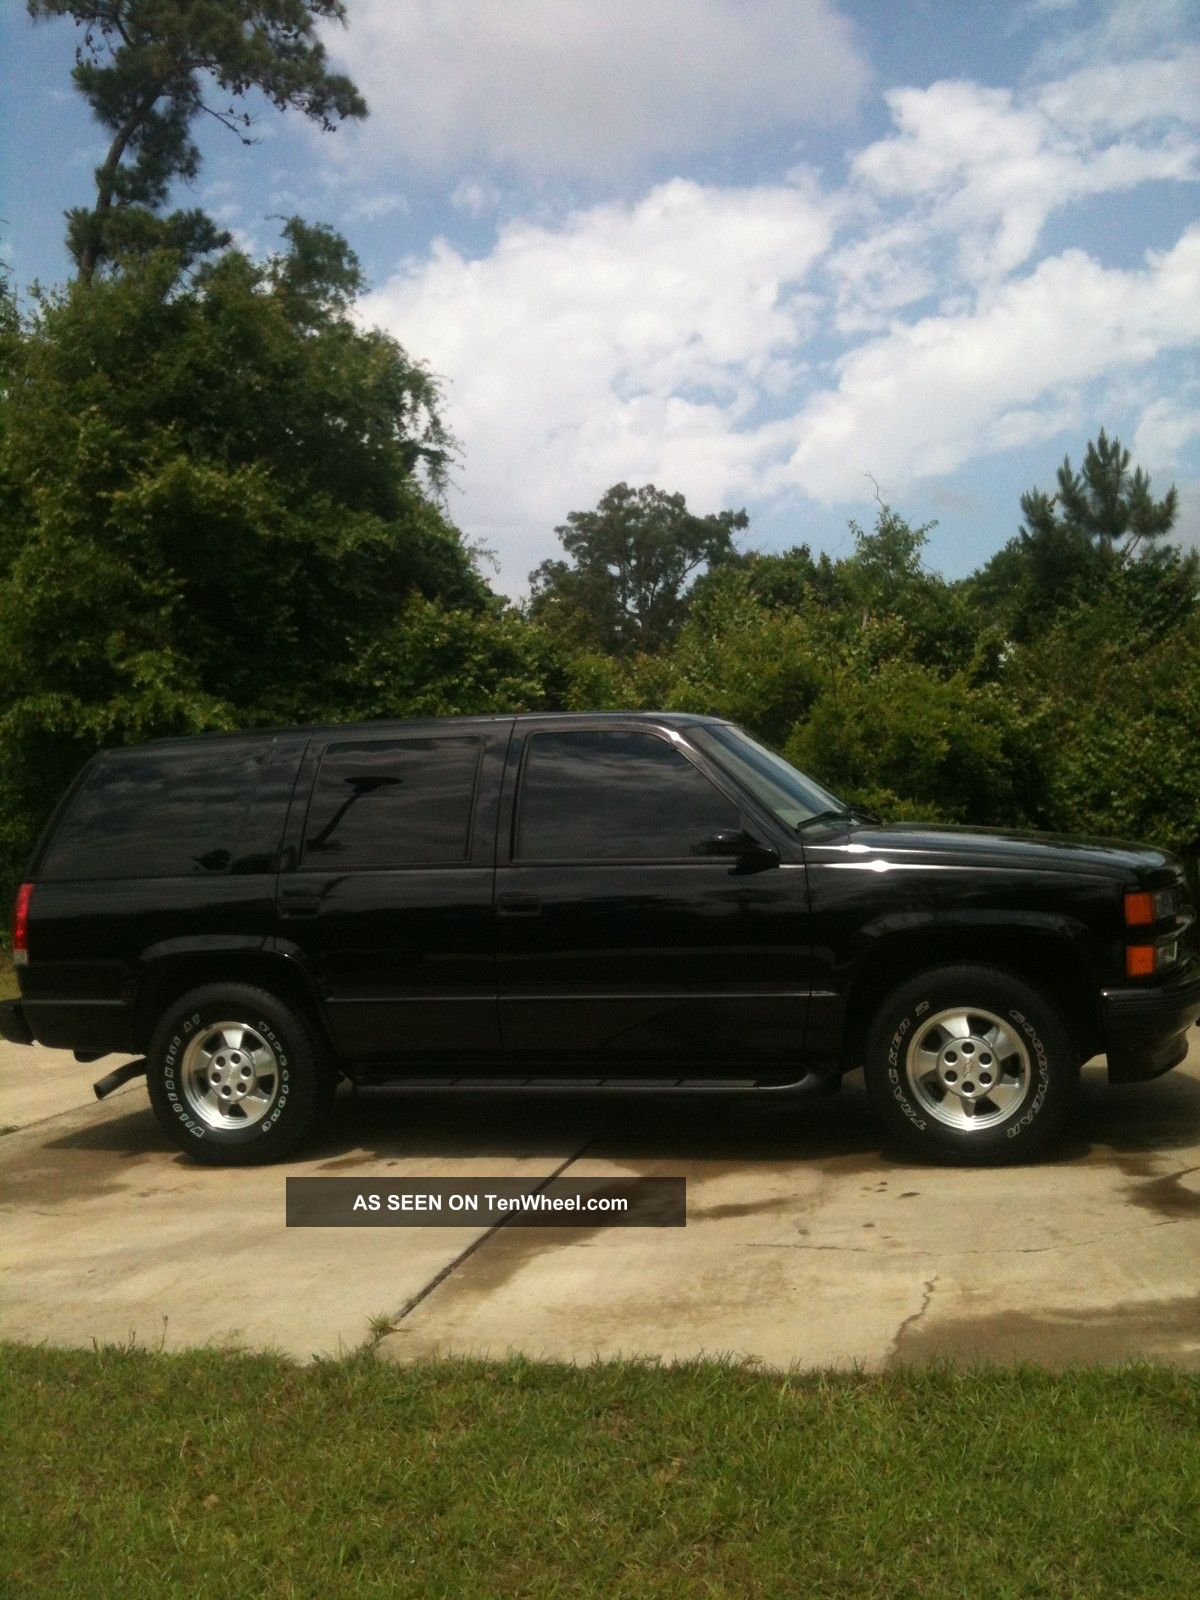 1999 gmc yukon slt chevrolet tahoe limited 4 door 5 7l. Black Bedroom Furniture Sets. Home Design Ideas